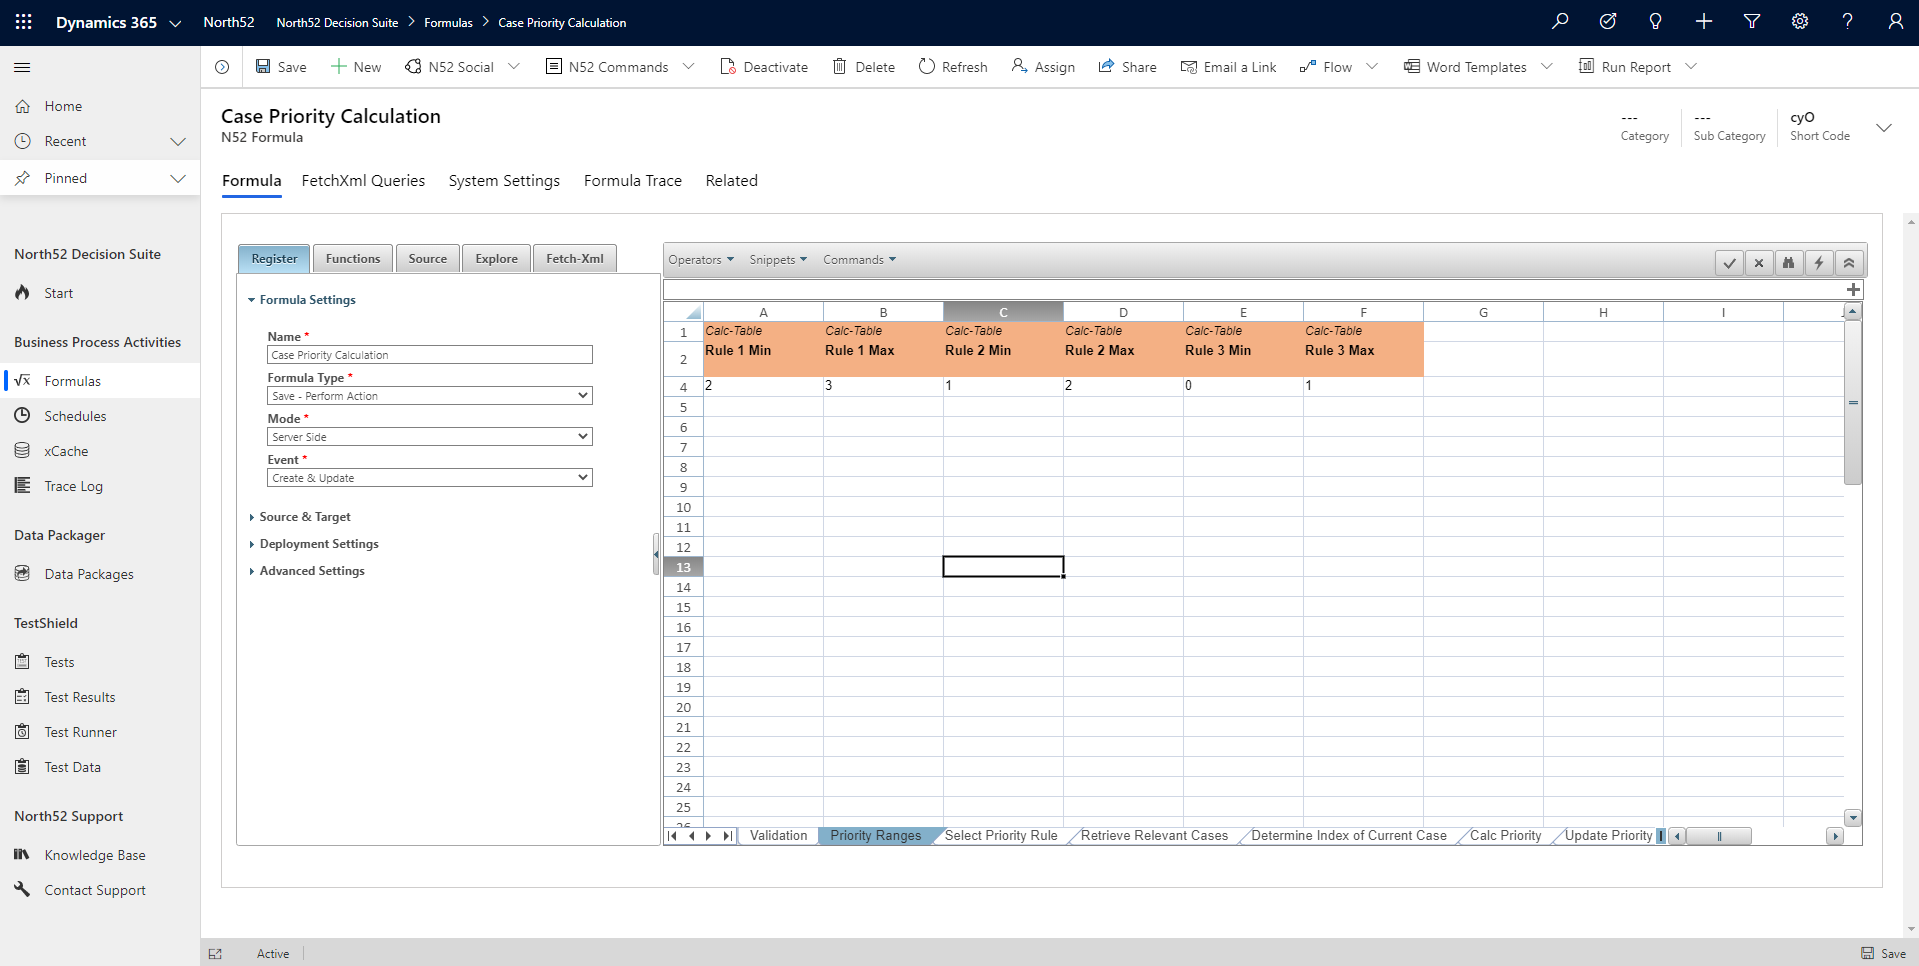 Priority Ranges Decision Table - North52 Business Rules Engine for Dynamics 365